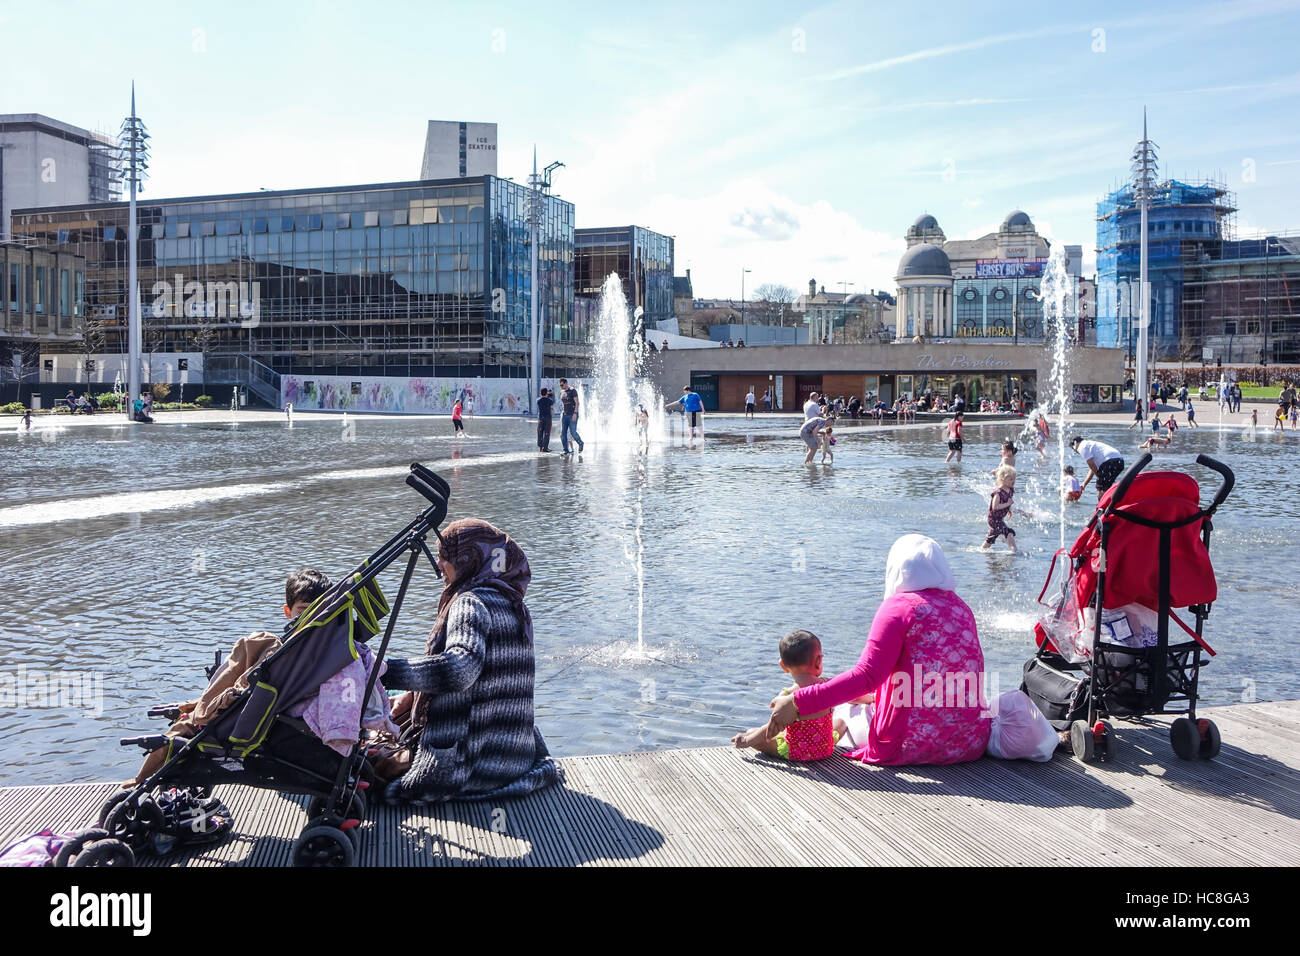 Multi ethnic scene at Bradford City Park with families having fun in the Mirror Pool - Stock Image